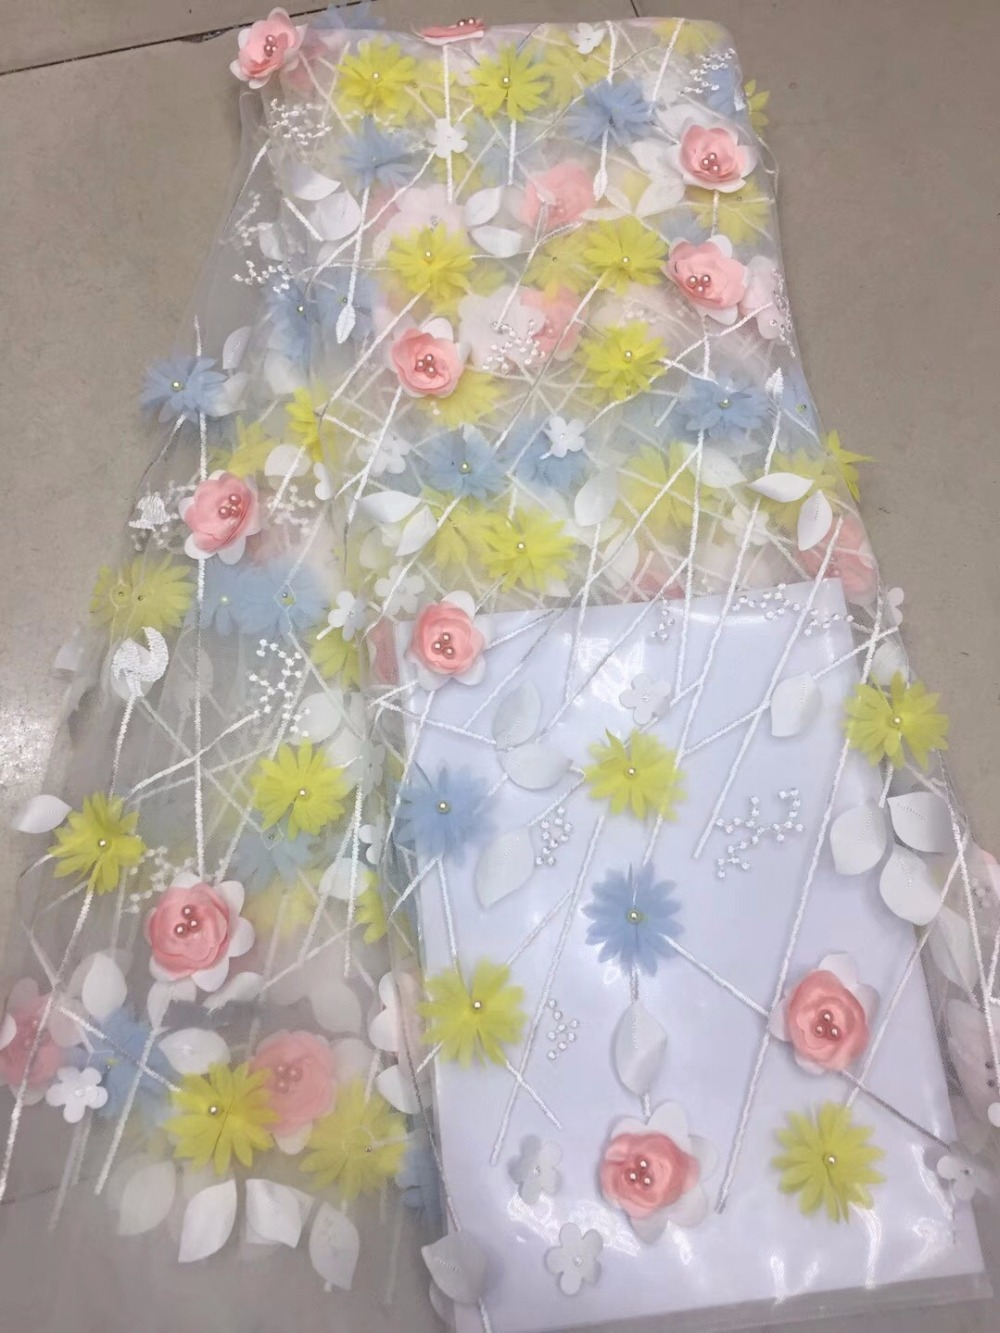 3D Lace Fabric 2018 High Quality Mesh Embroidery Applique 3D Flower Tulle Nigerian Lace Fabrics 3D Lace Fabric 2018 High Quality Mesh Embroidery Applique 3D Flower Tulle Nigerian Lace Fabrics